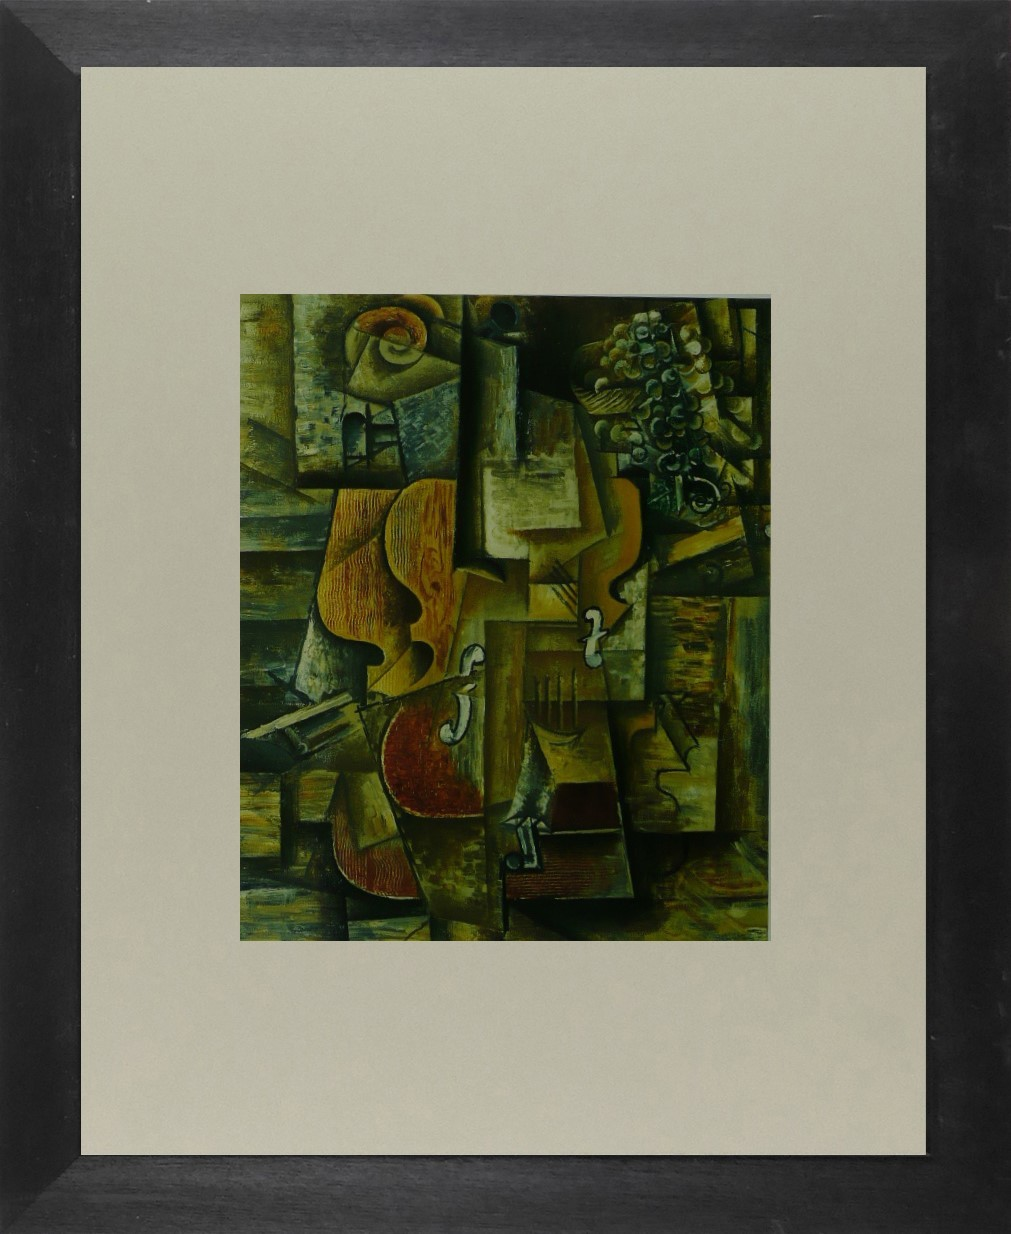 Violin & Grapes - Picasso - Framed Picture 11 x 14